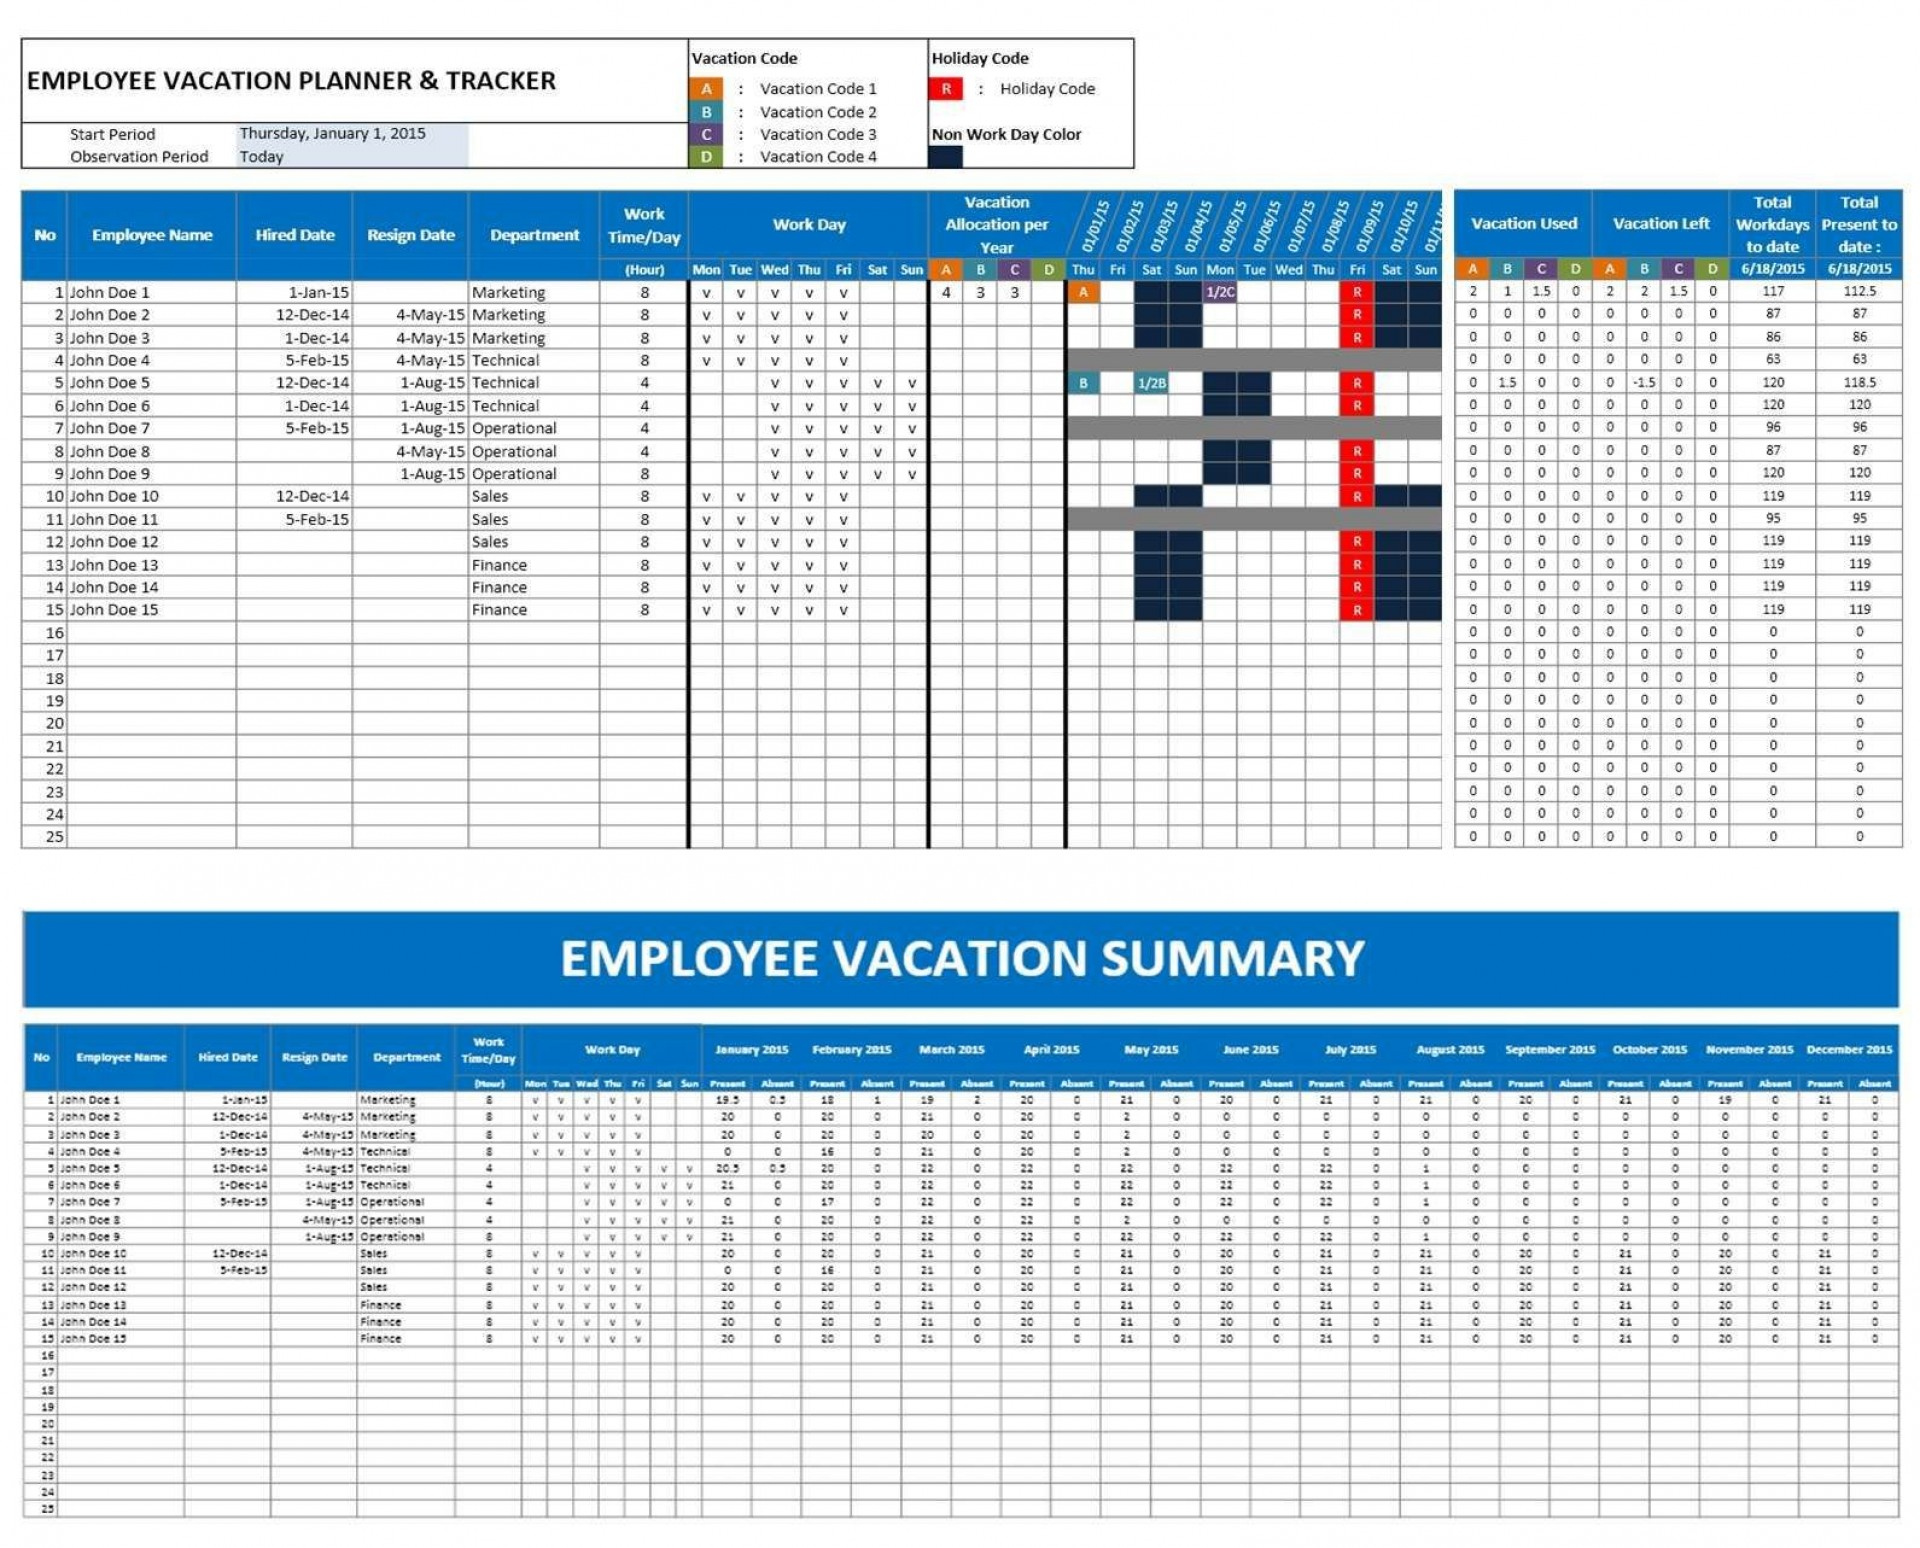 003 Formidable Employee Calendar Template Excel Example  Staff Leave Vacation Planner1920